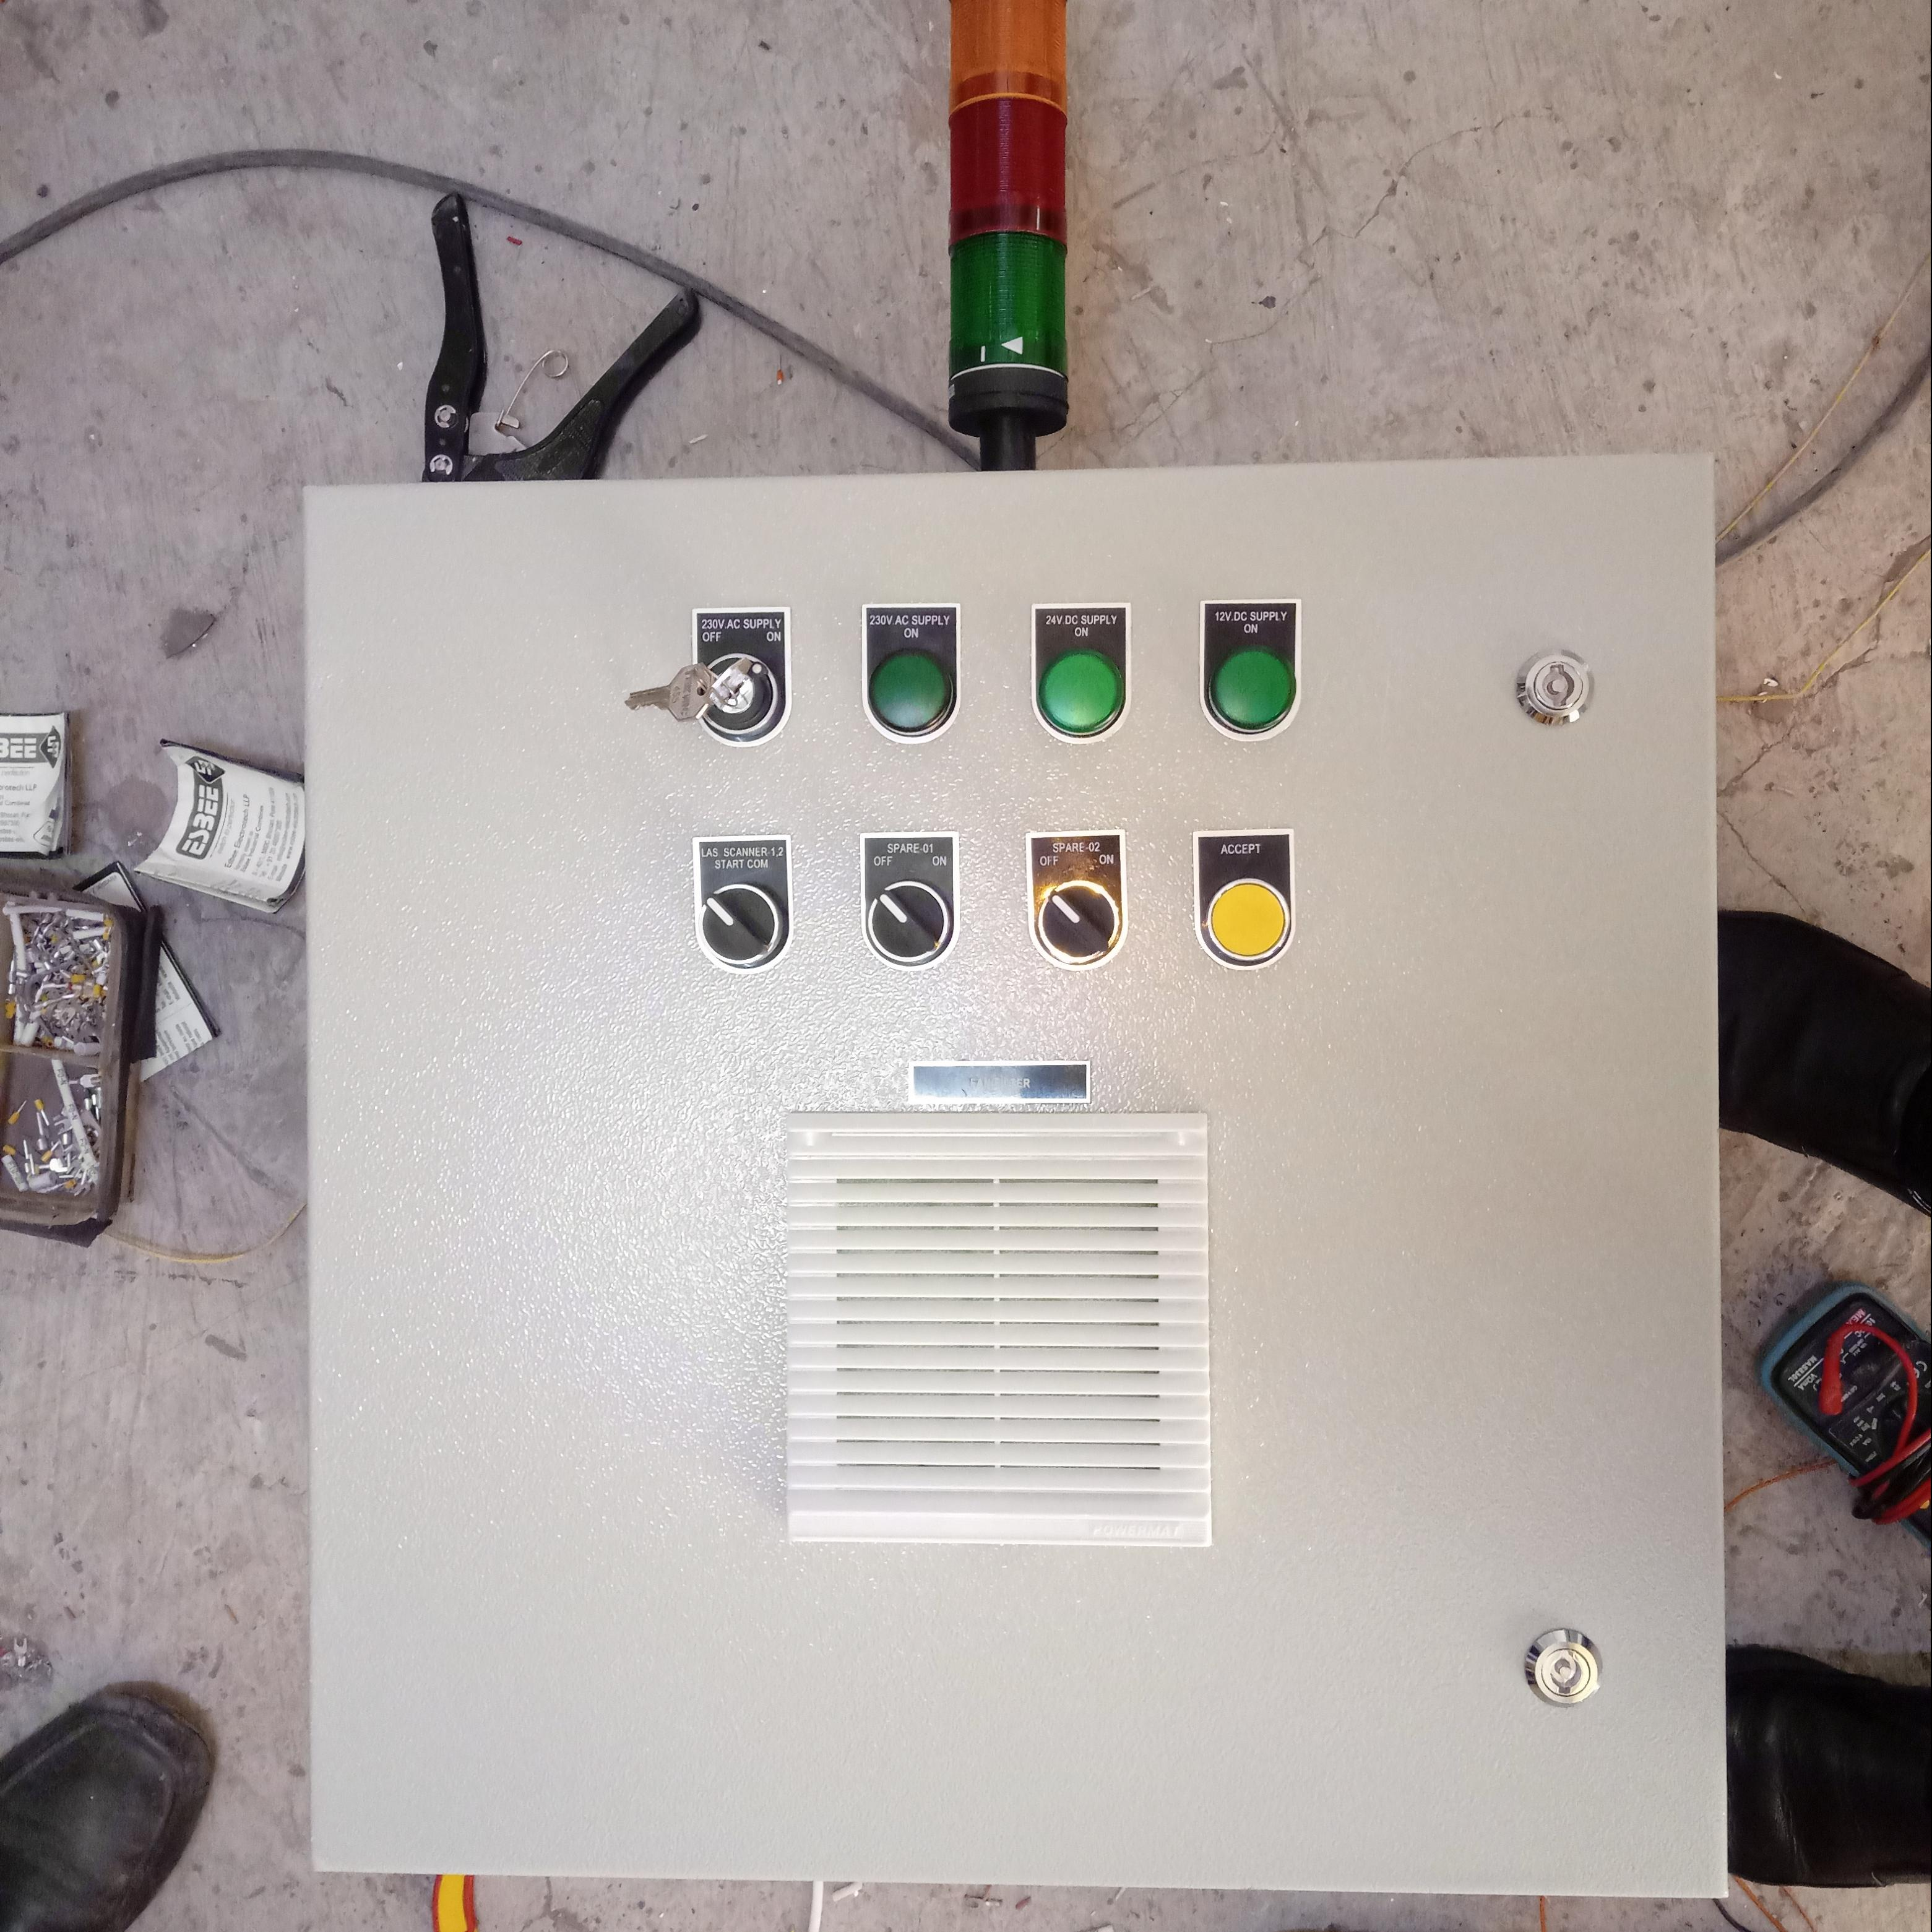 A Conveyor Health Monitoring System